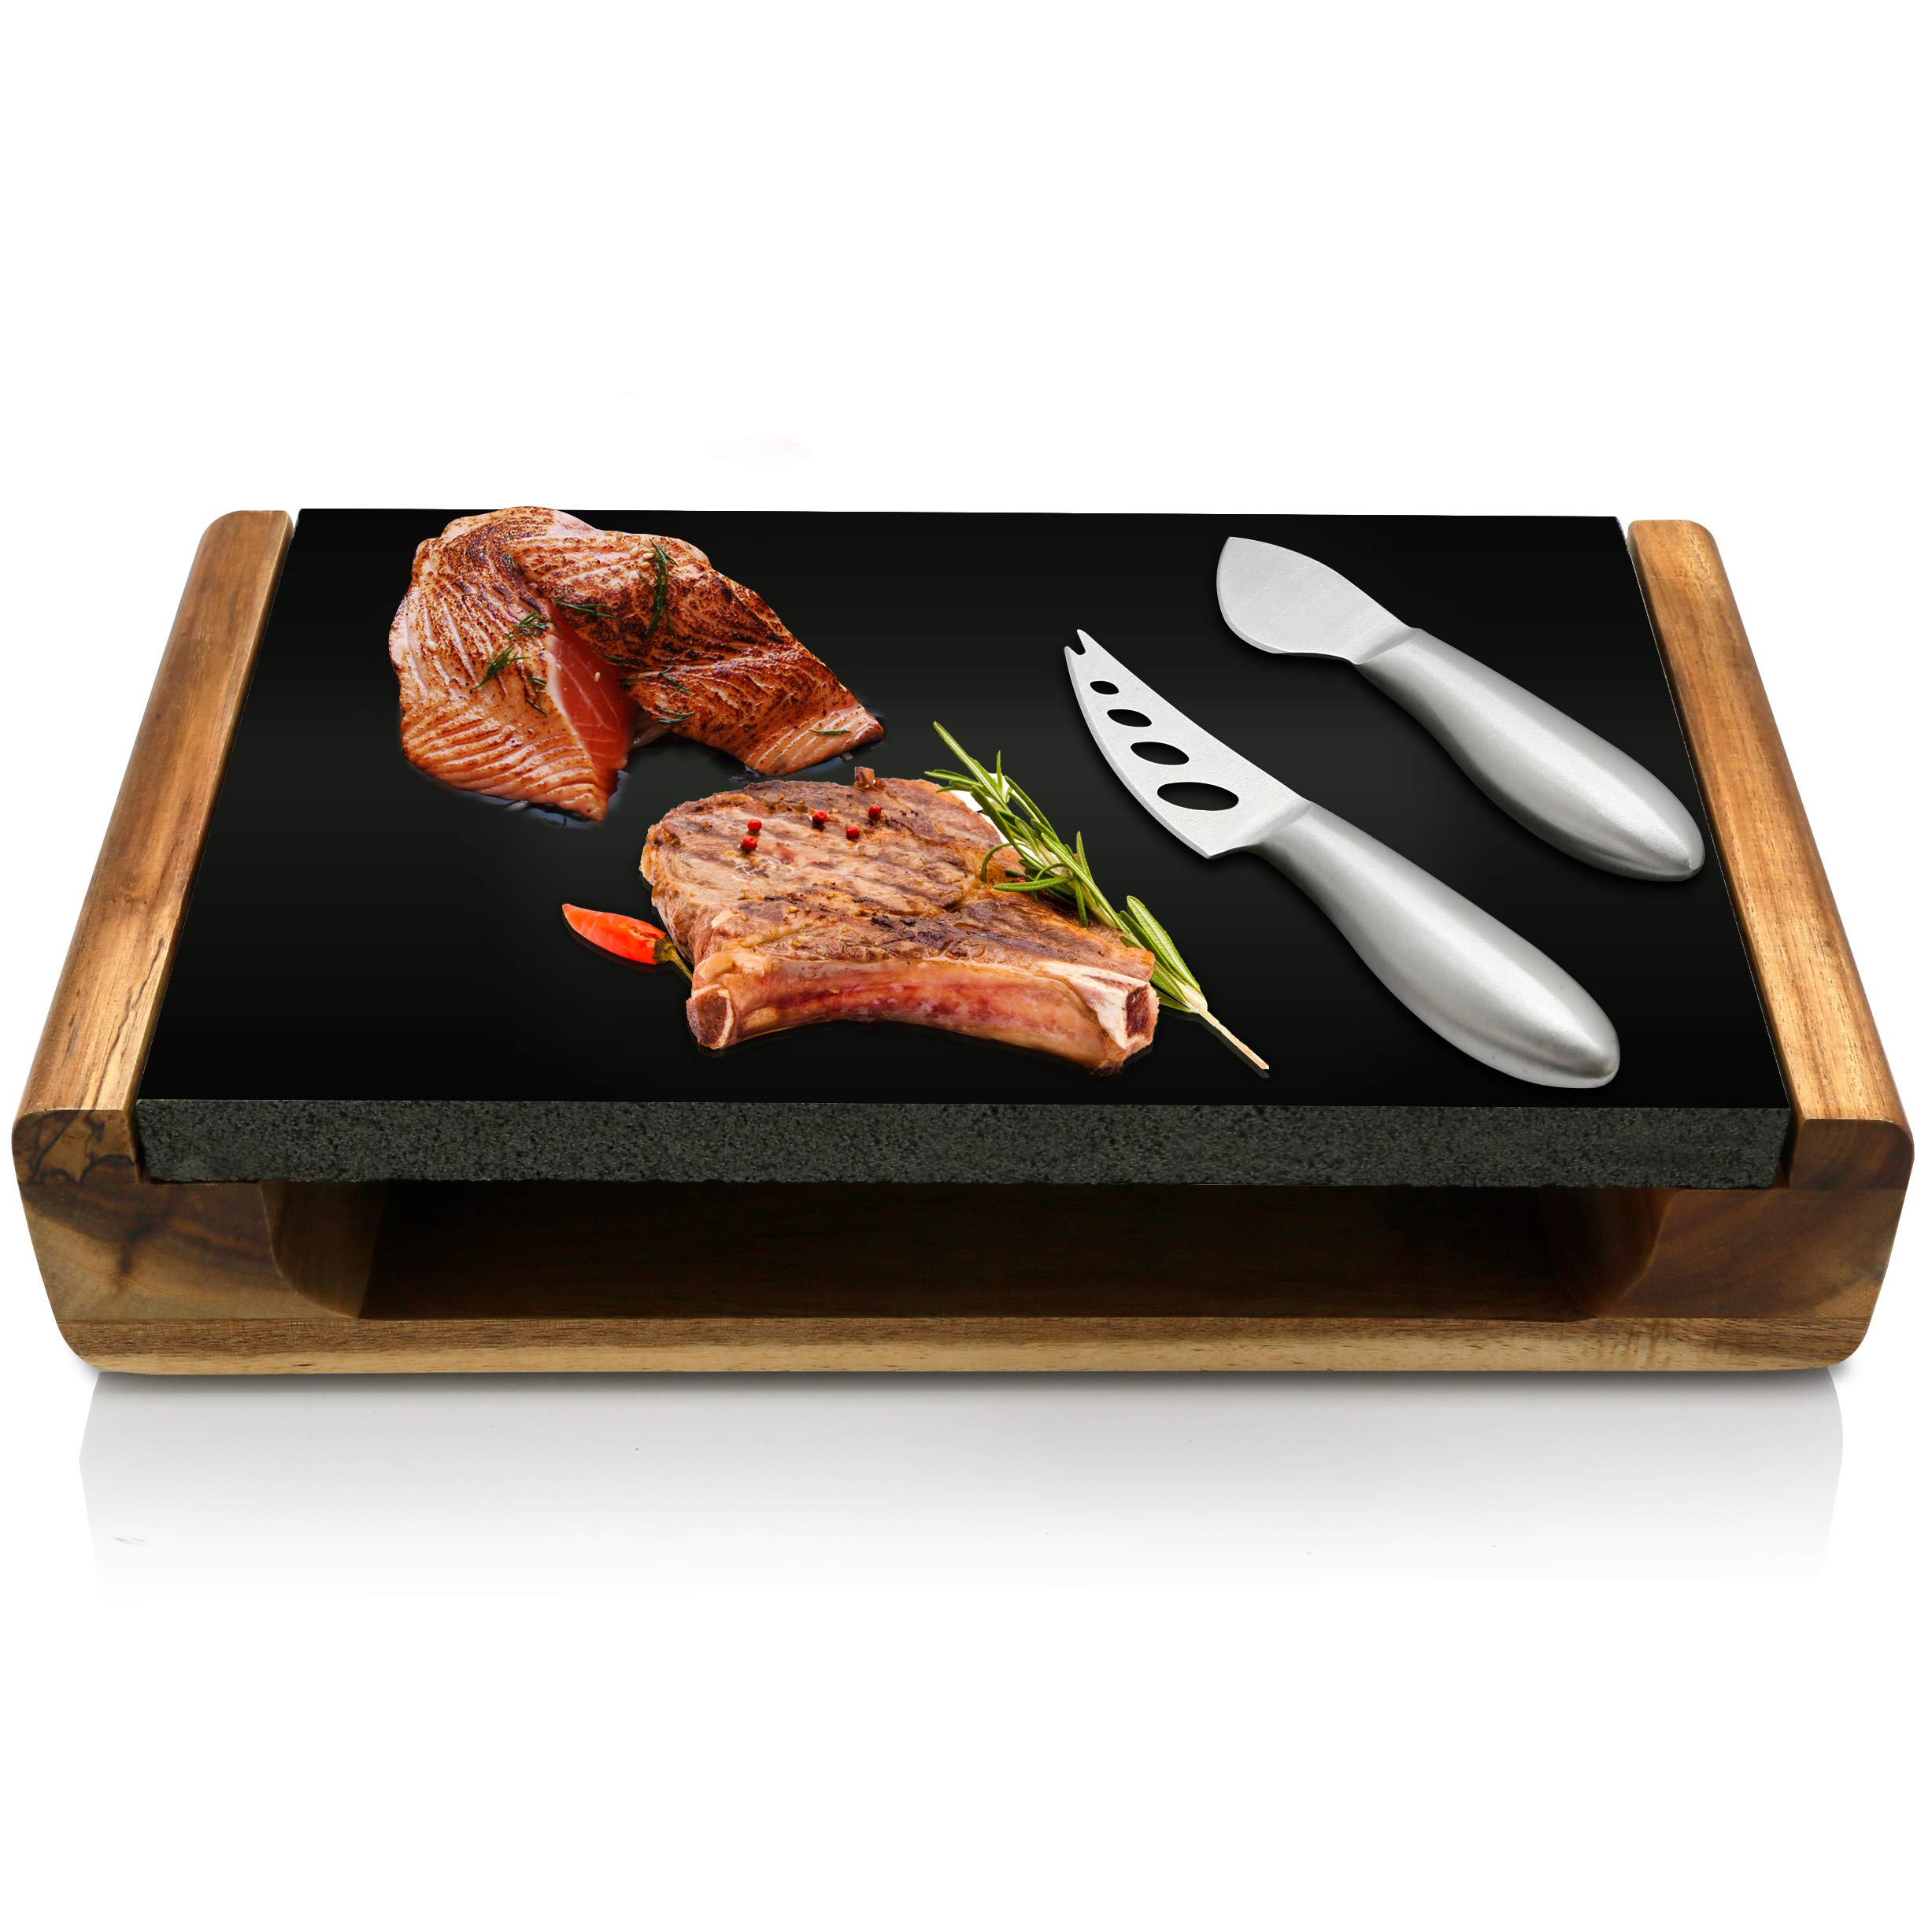 Hot Lava Stone Steak Plate - Lava Rock Cooking Stone Grill/Food Serving Platter Set w/ Acacia Wood Tray, Lava Rock Slab, Stainless Steel Knives - Lava Rock For Cooking Steak, Meat - NutriChef PKLVST10